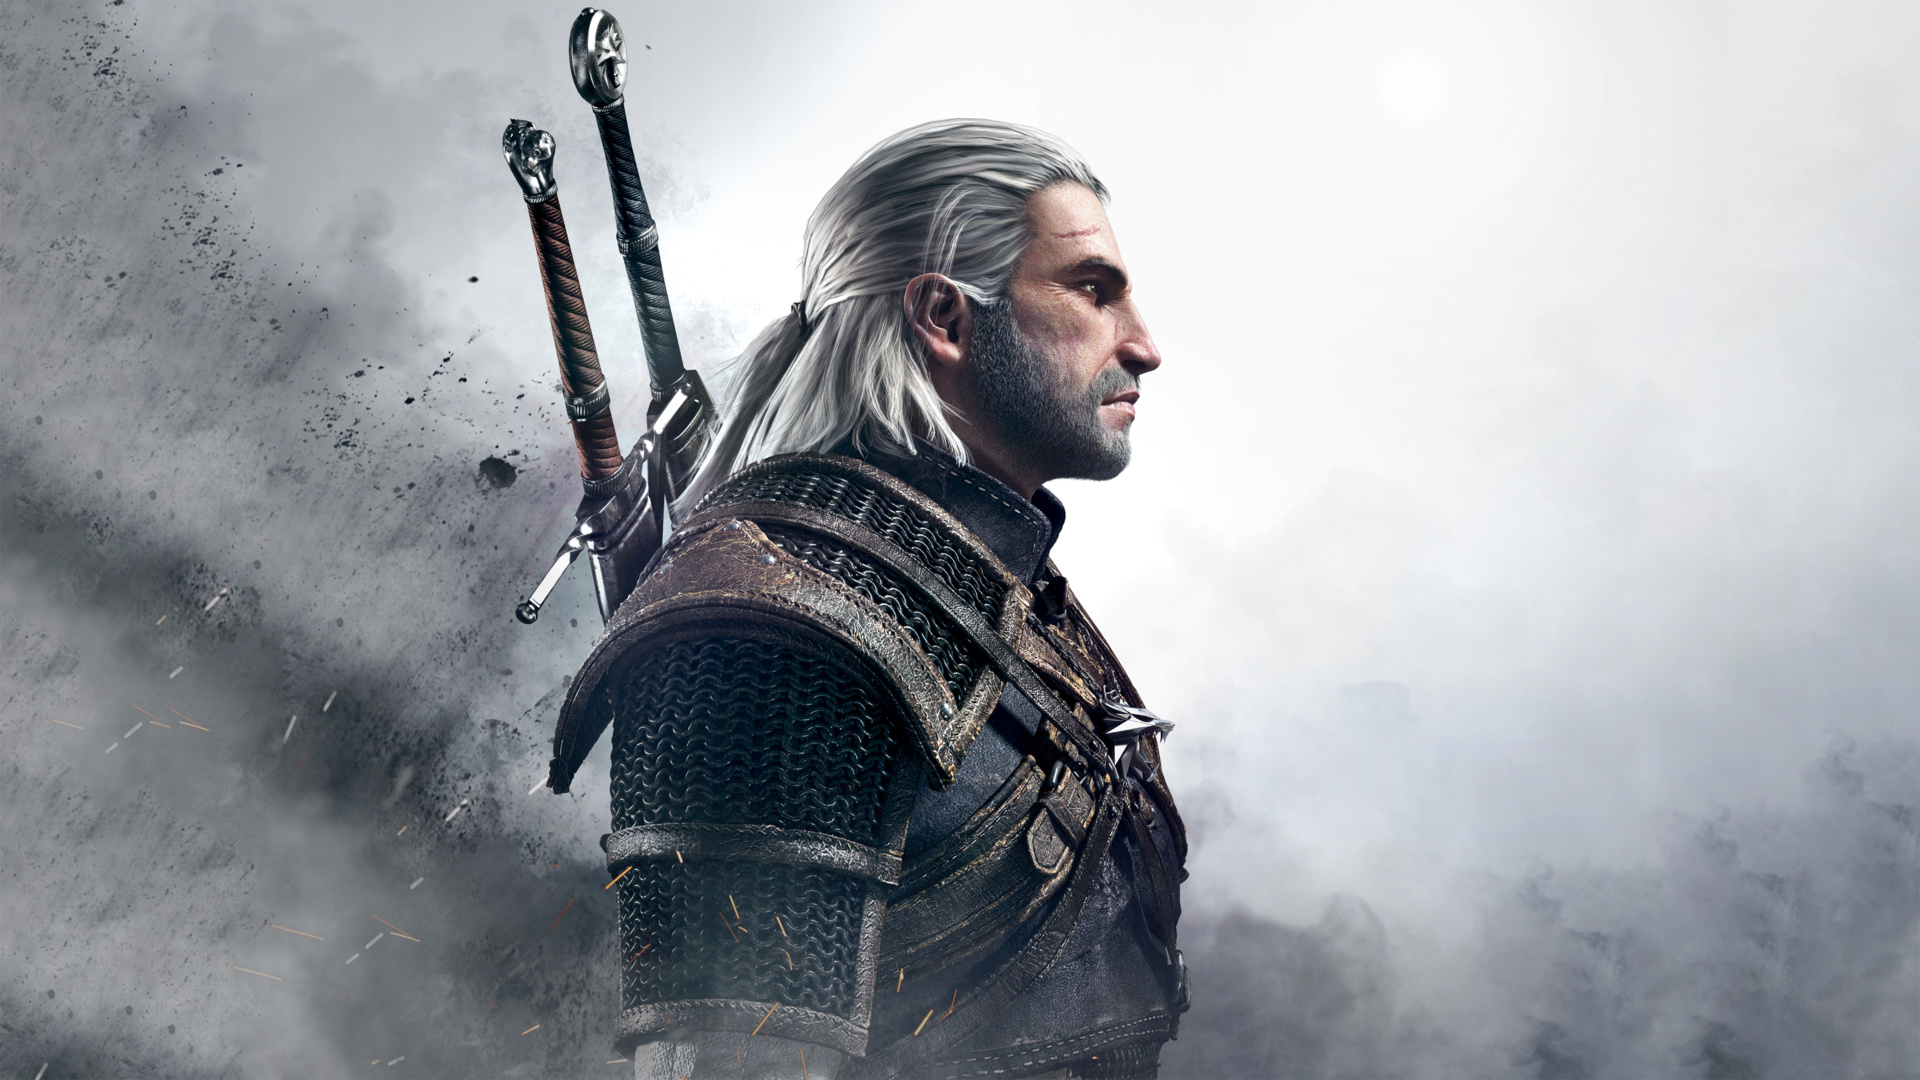 The Witcher 3 Redux 2.1 Launches With Major Updates For The Icons, AHI Buffs, And Other Game-play Enhancements By Aleks Vuckovic